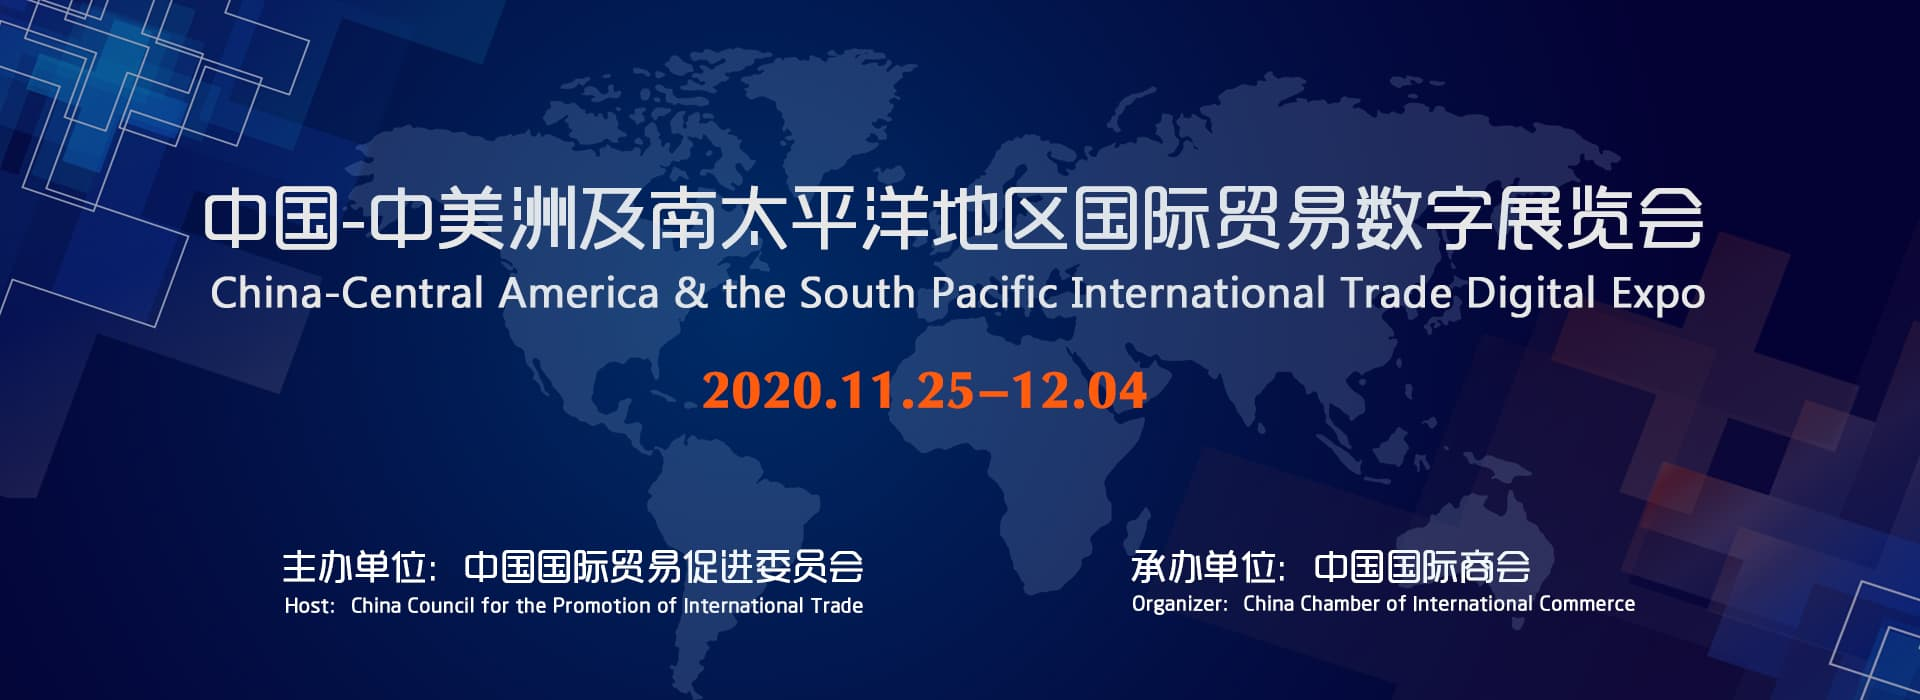 China-Central America & the South Pacific International Trade Digital ExpoValidation